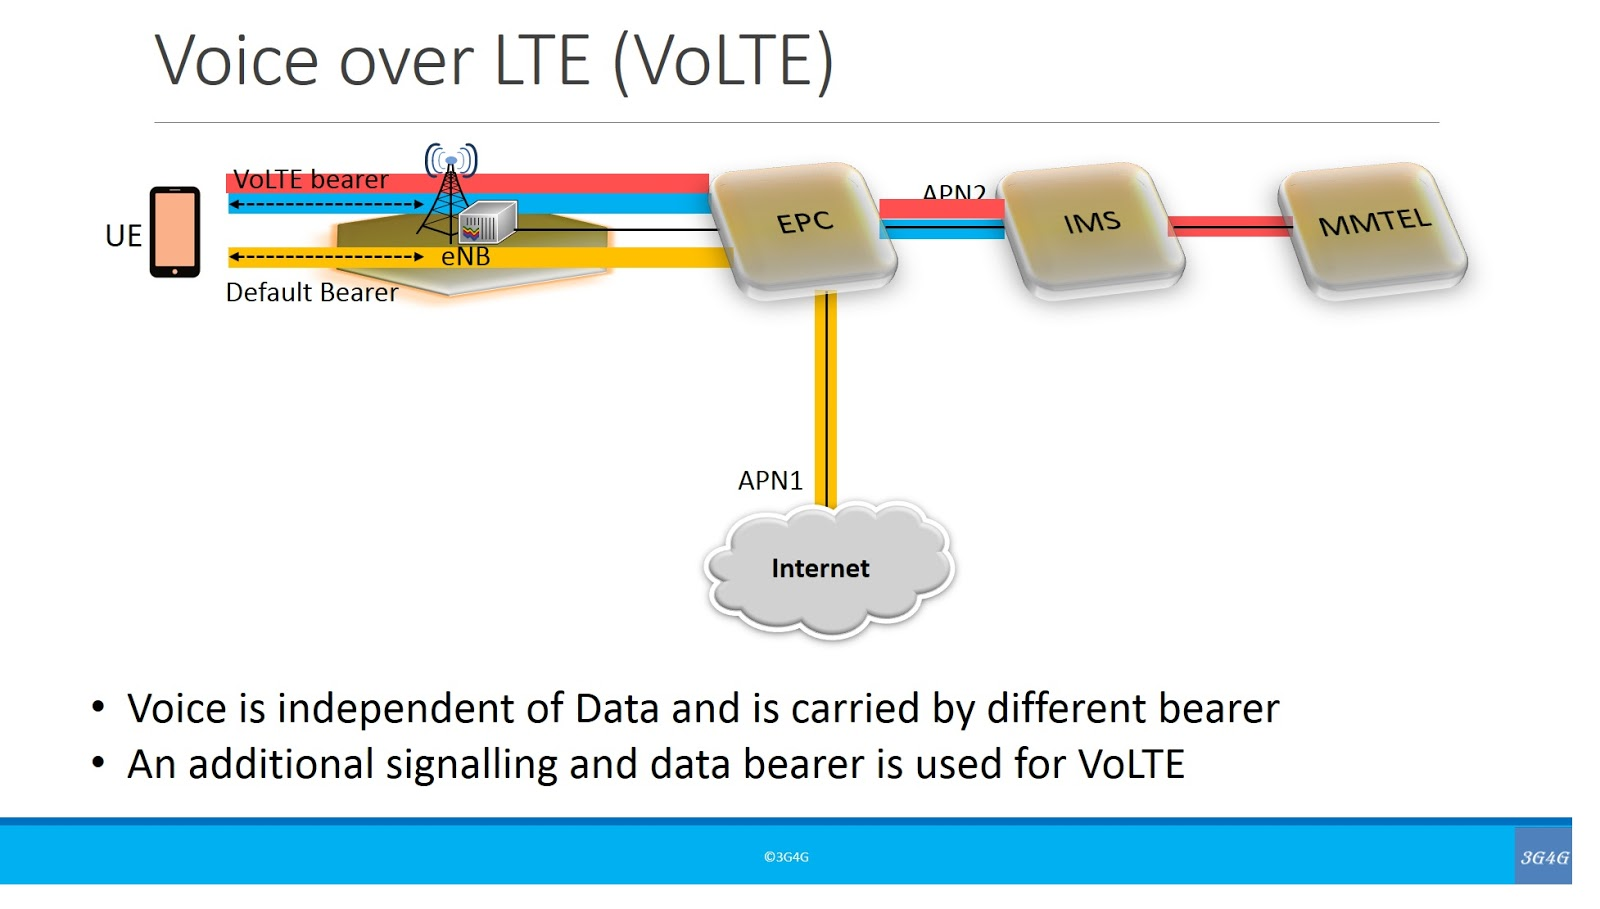 The 3G4G Blog: VoLTE